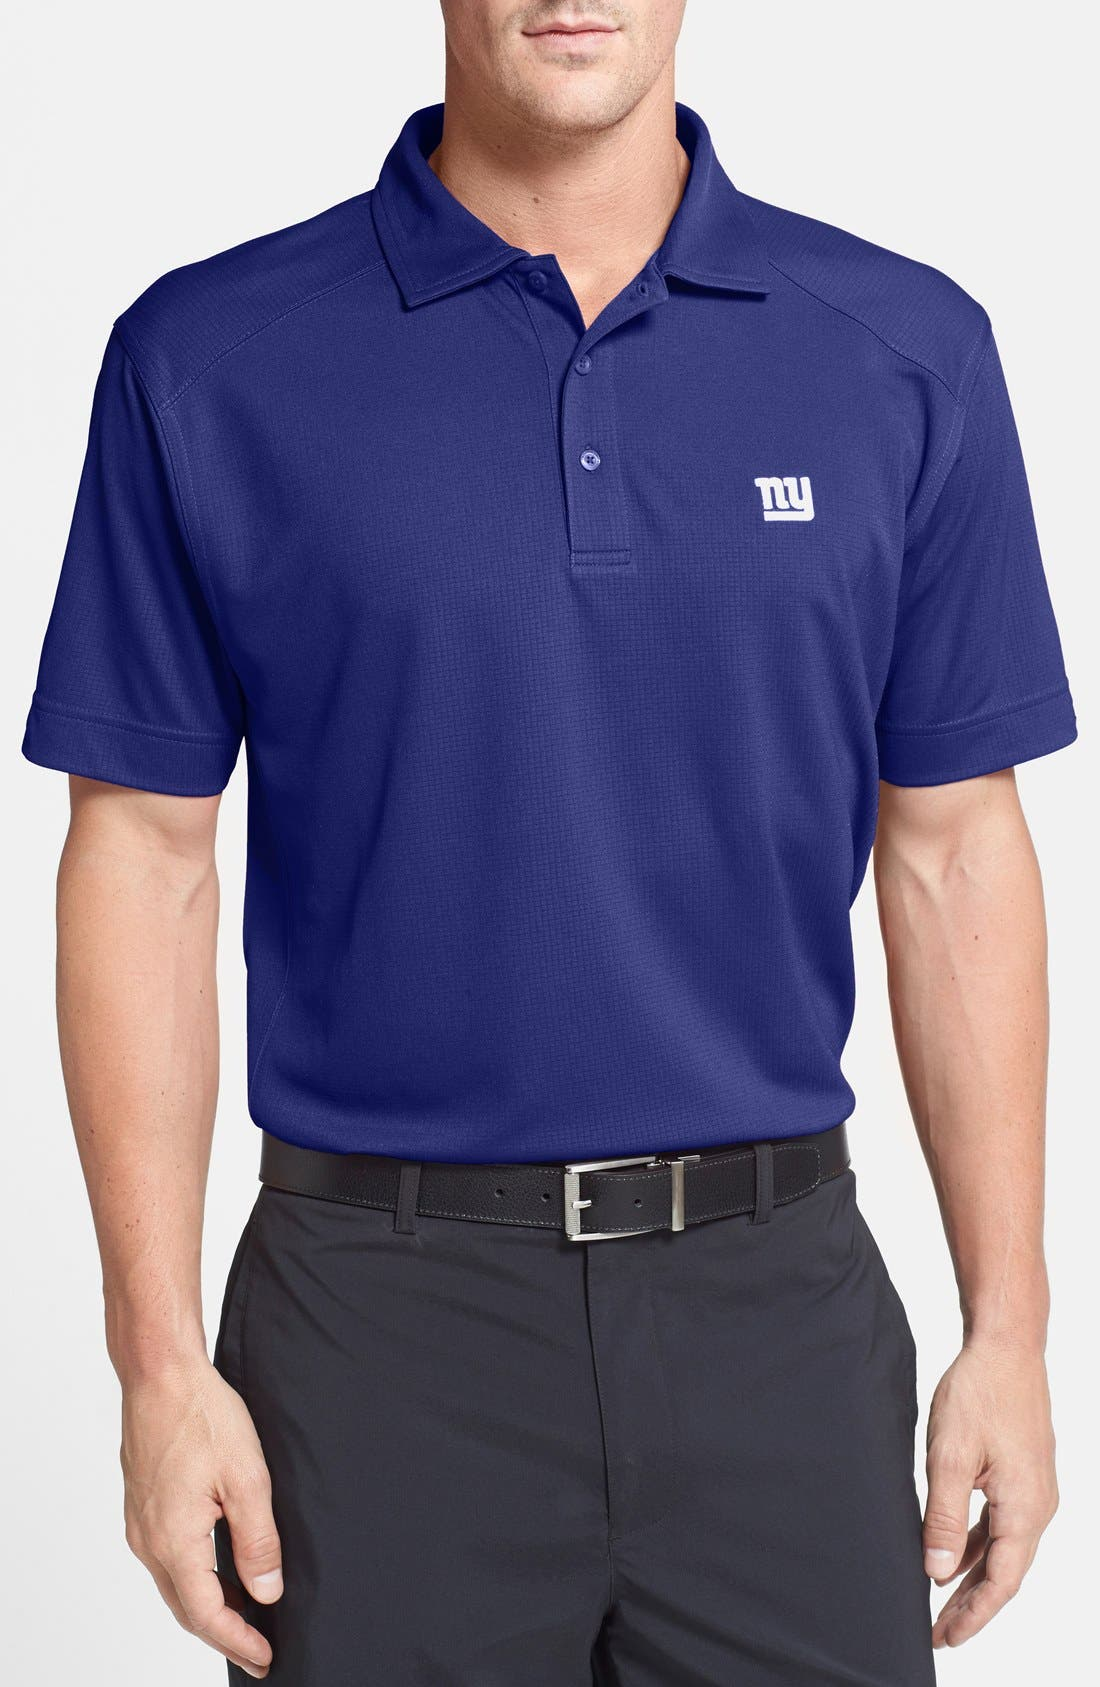 Main Image - Cutter & Buck 'New York Giants - Genre' DryTec Moisture Wicking Polo